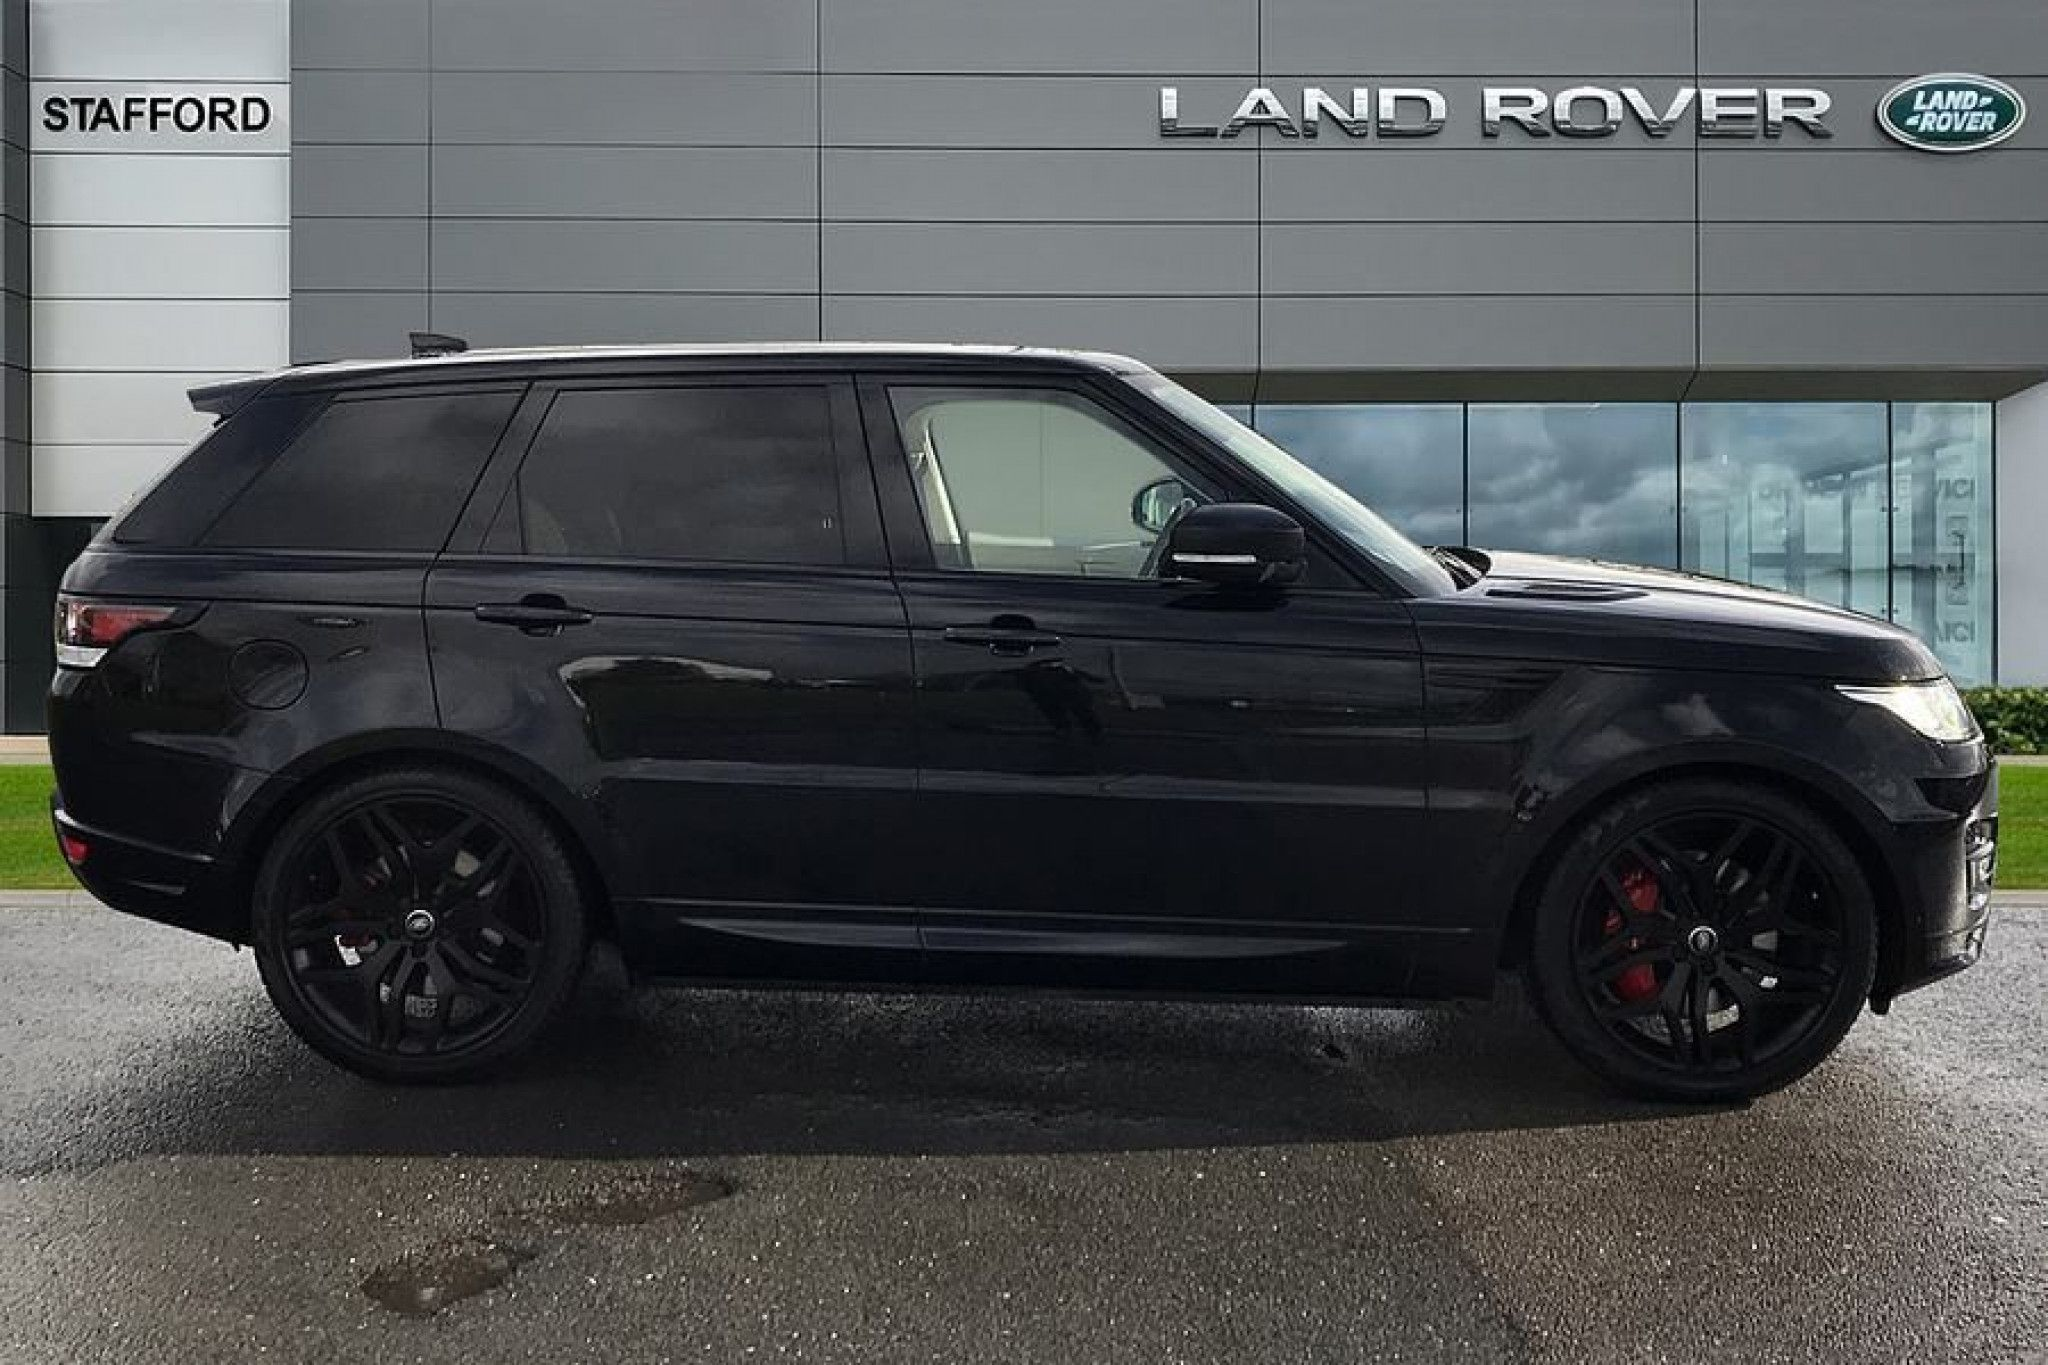 Land Rover Range Rover Sport 3 0 Sdv6 306 Autobiography Dynamic 5dr Auto For Sale Range Rover Sport Luxury Cars Range Rover Land Rover